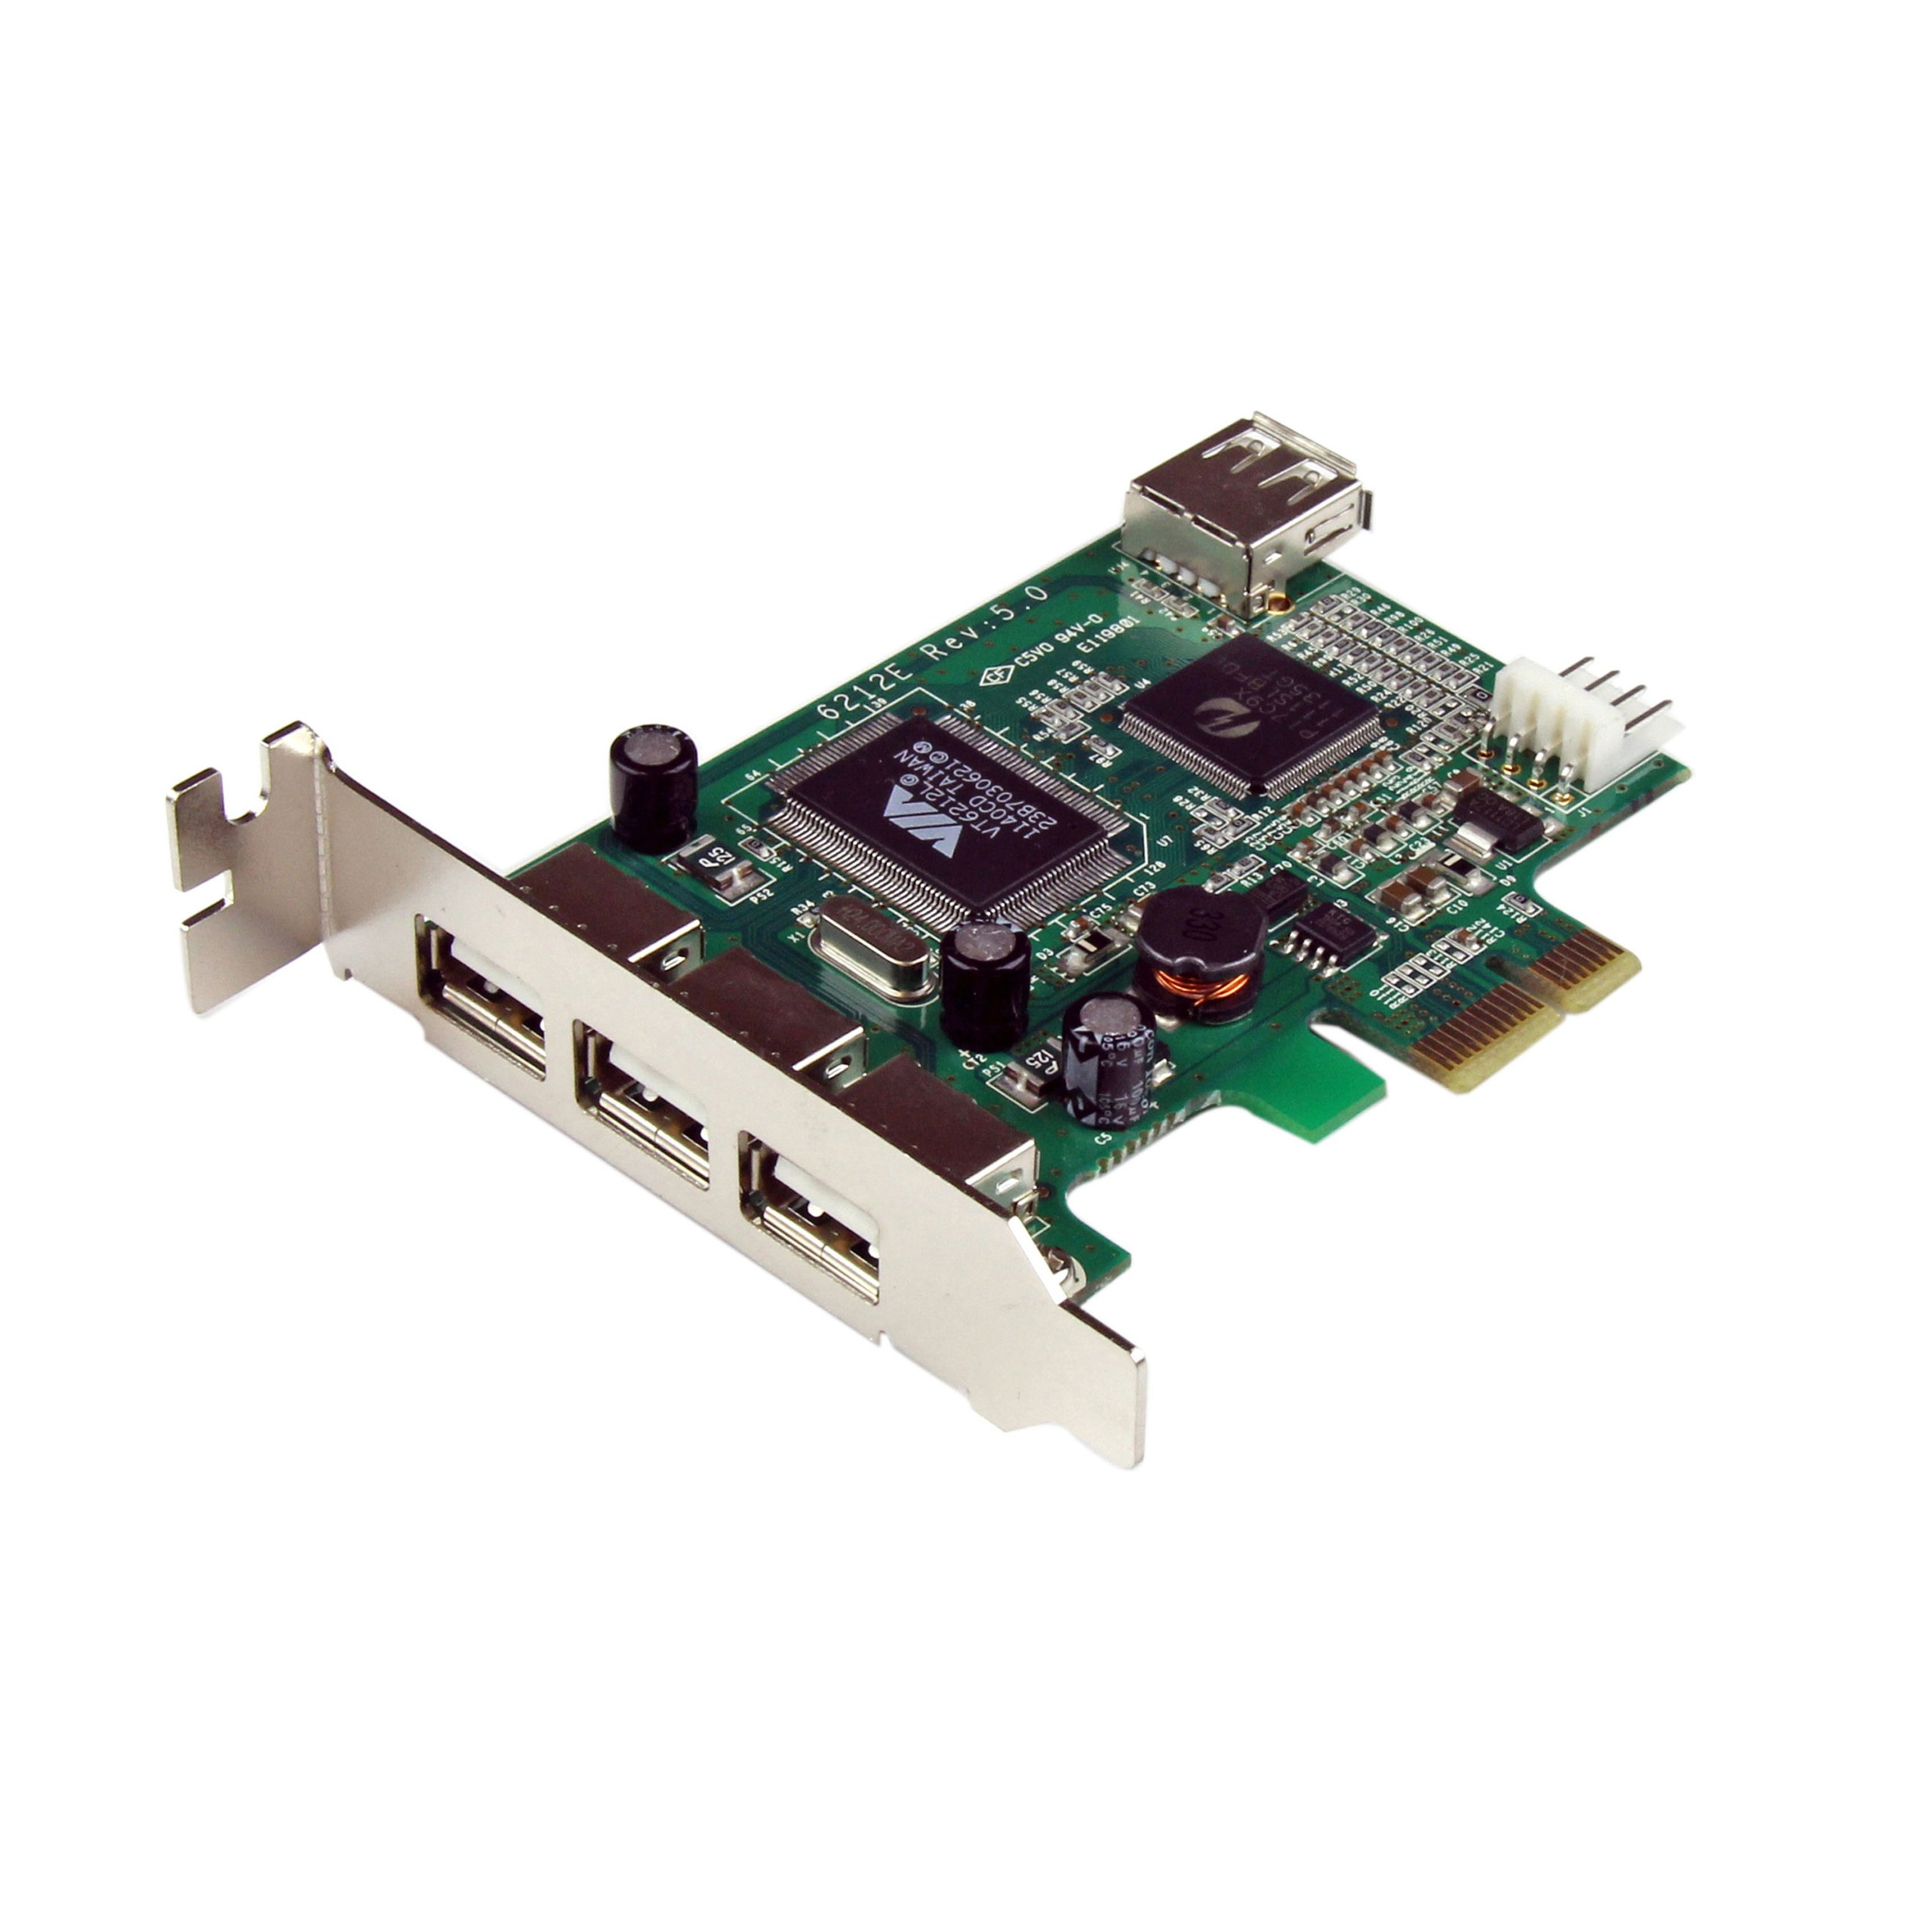 4 Port PCI Express Low Profile High Speed USB Card - PCIe US